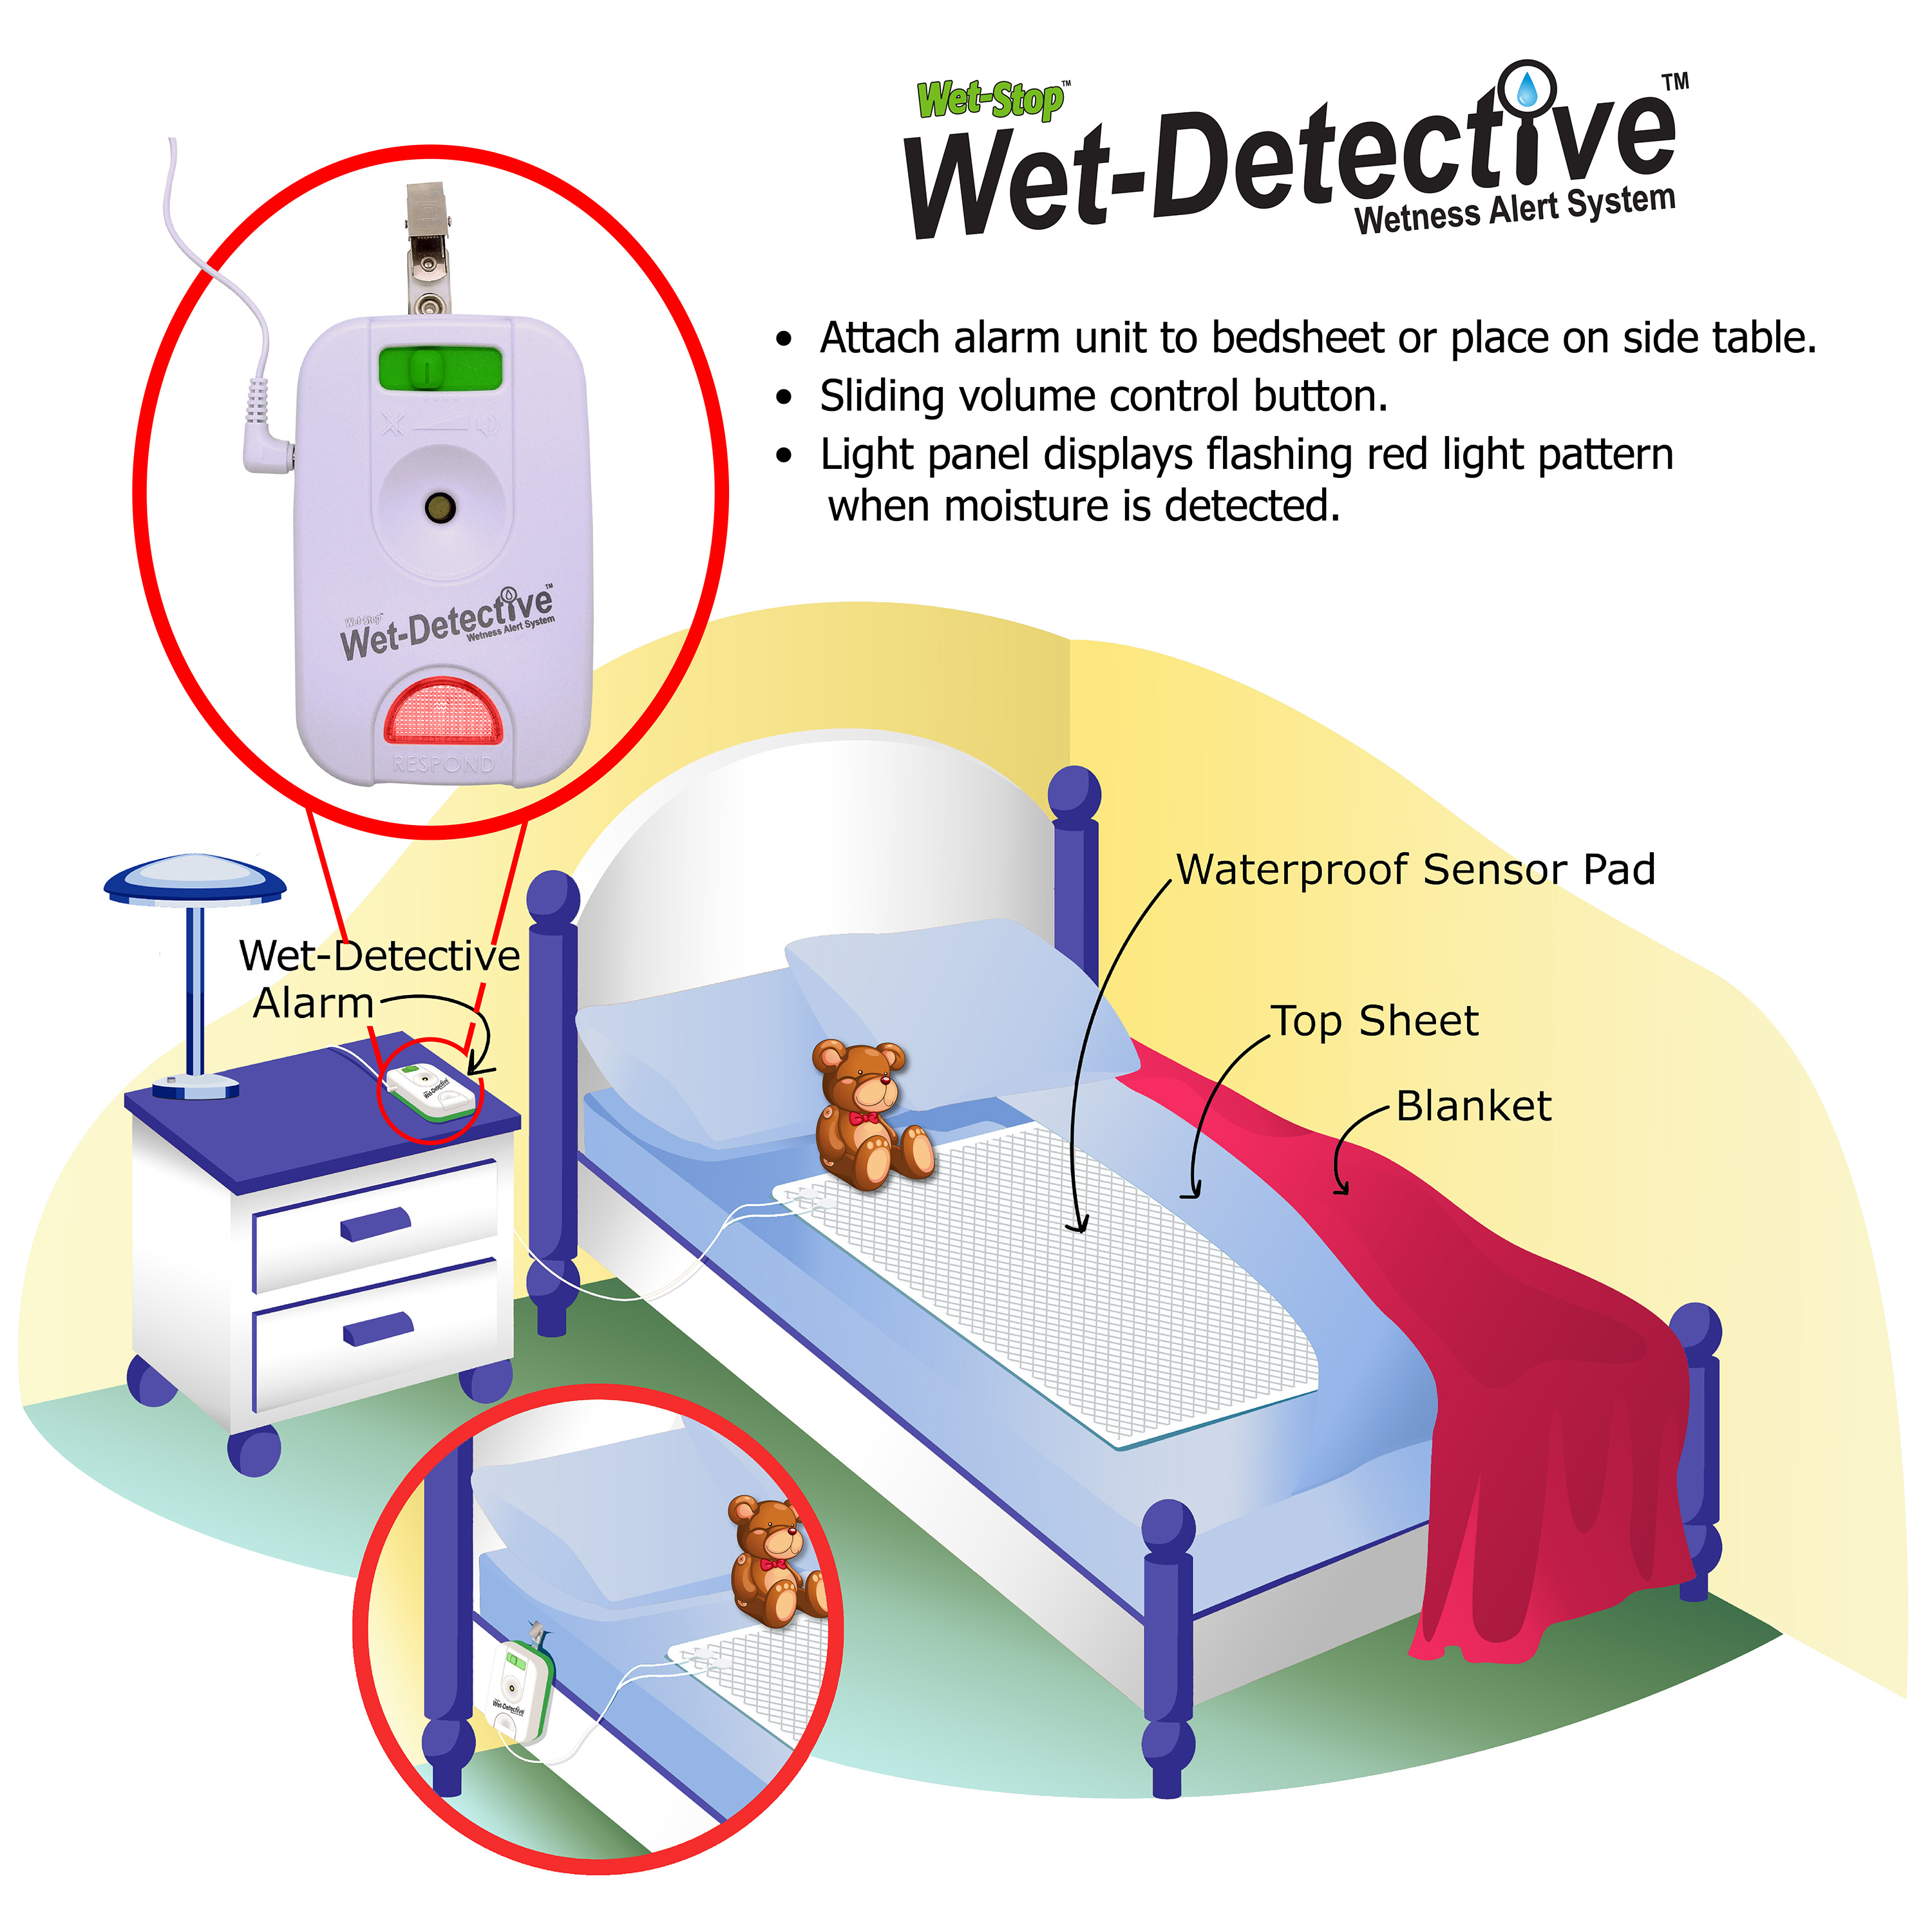 Wet-Detective bed pad alarm system is helpful for bedwetting.